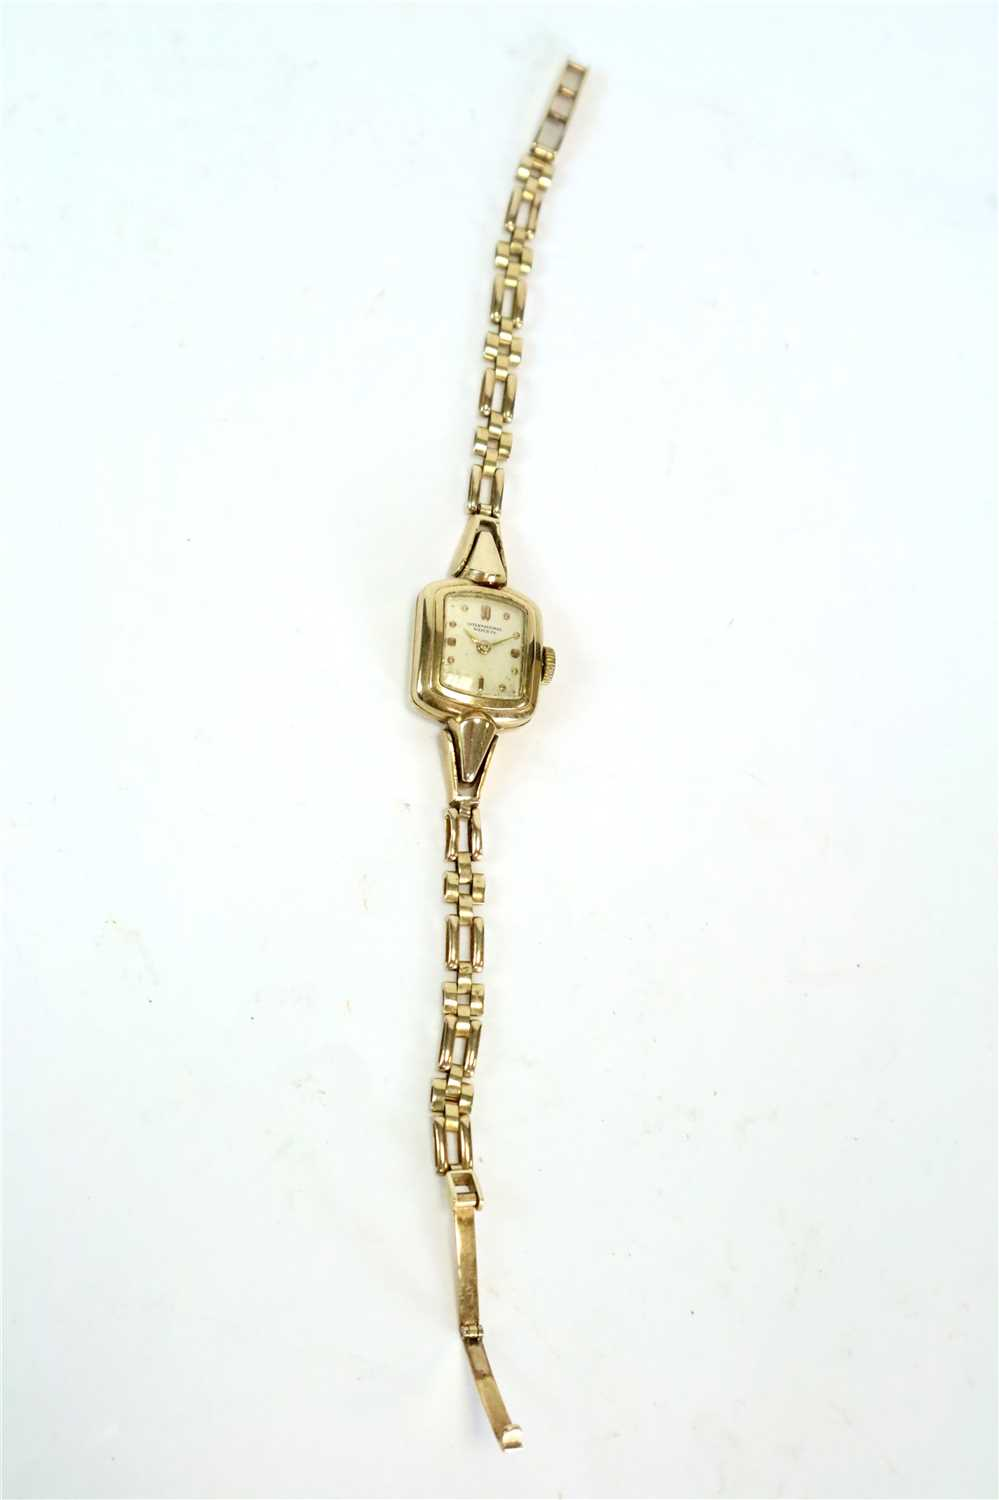 Lot 212 - A 9ct gold IWC bracelet watch